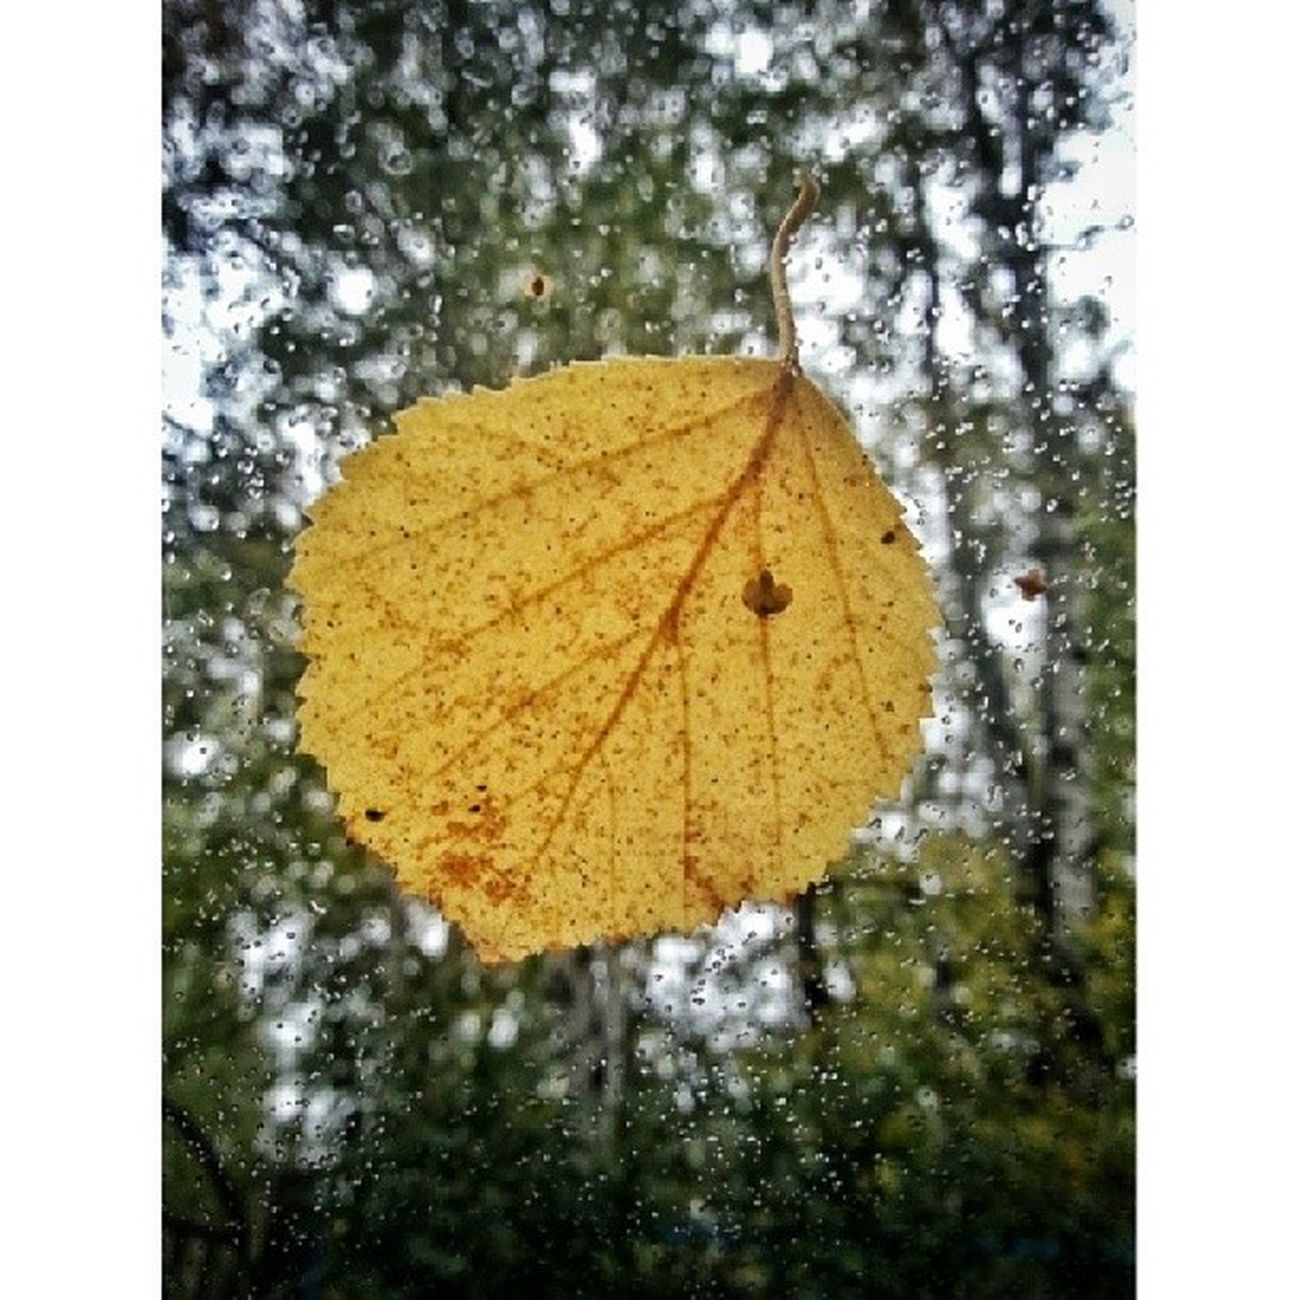 Leaf. Autumn Color Texture Texturama textureextreme textureporn rsa_ladies rsa_minimal tyumen instatyumen russia_ww nature photorussia phototag_it photoworld ru naturelovers nature_shooters nature_photography